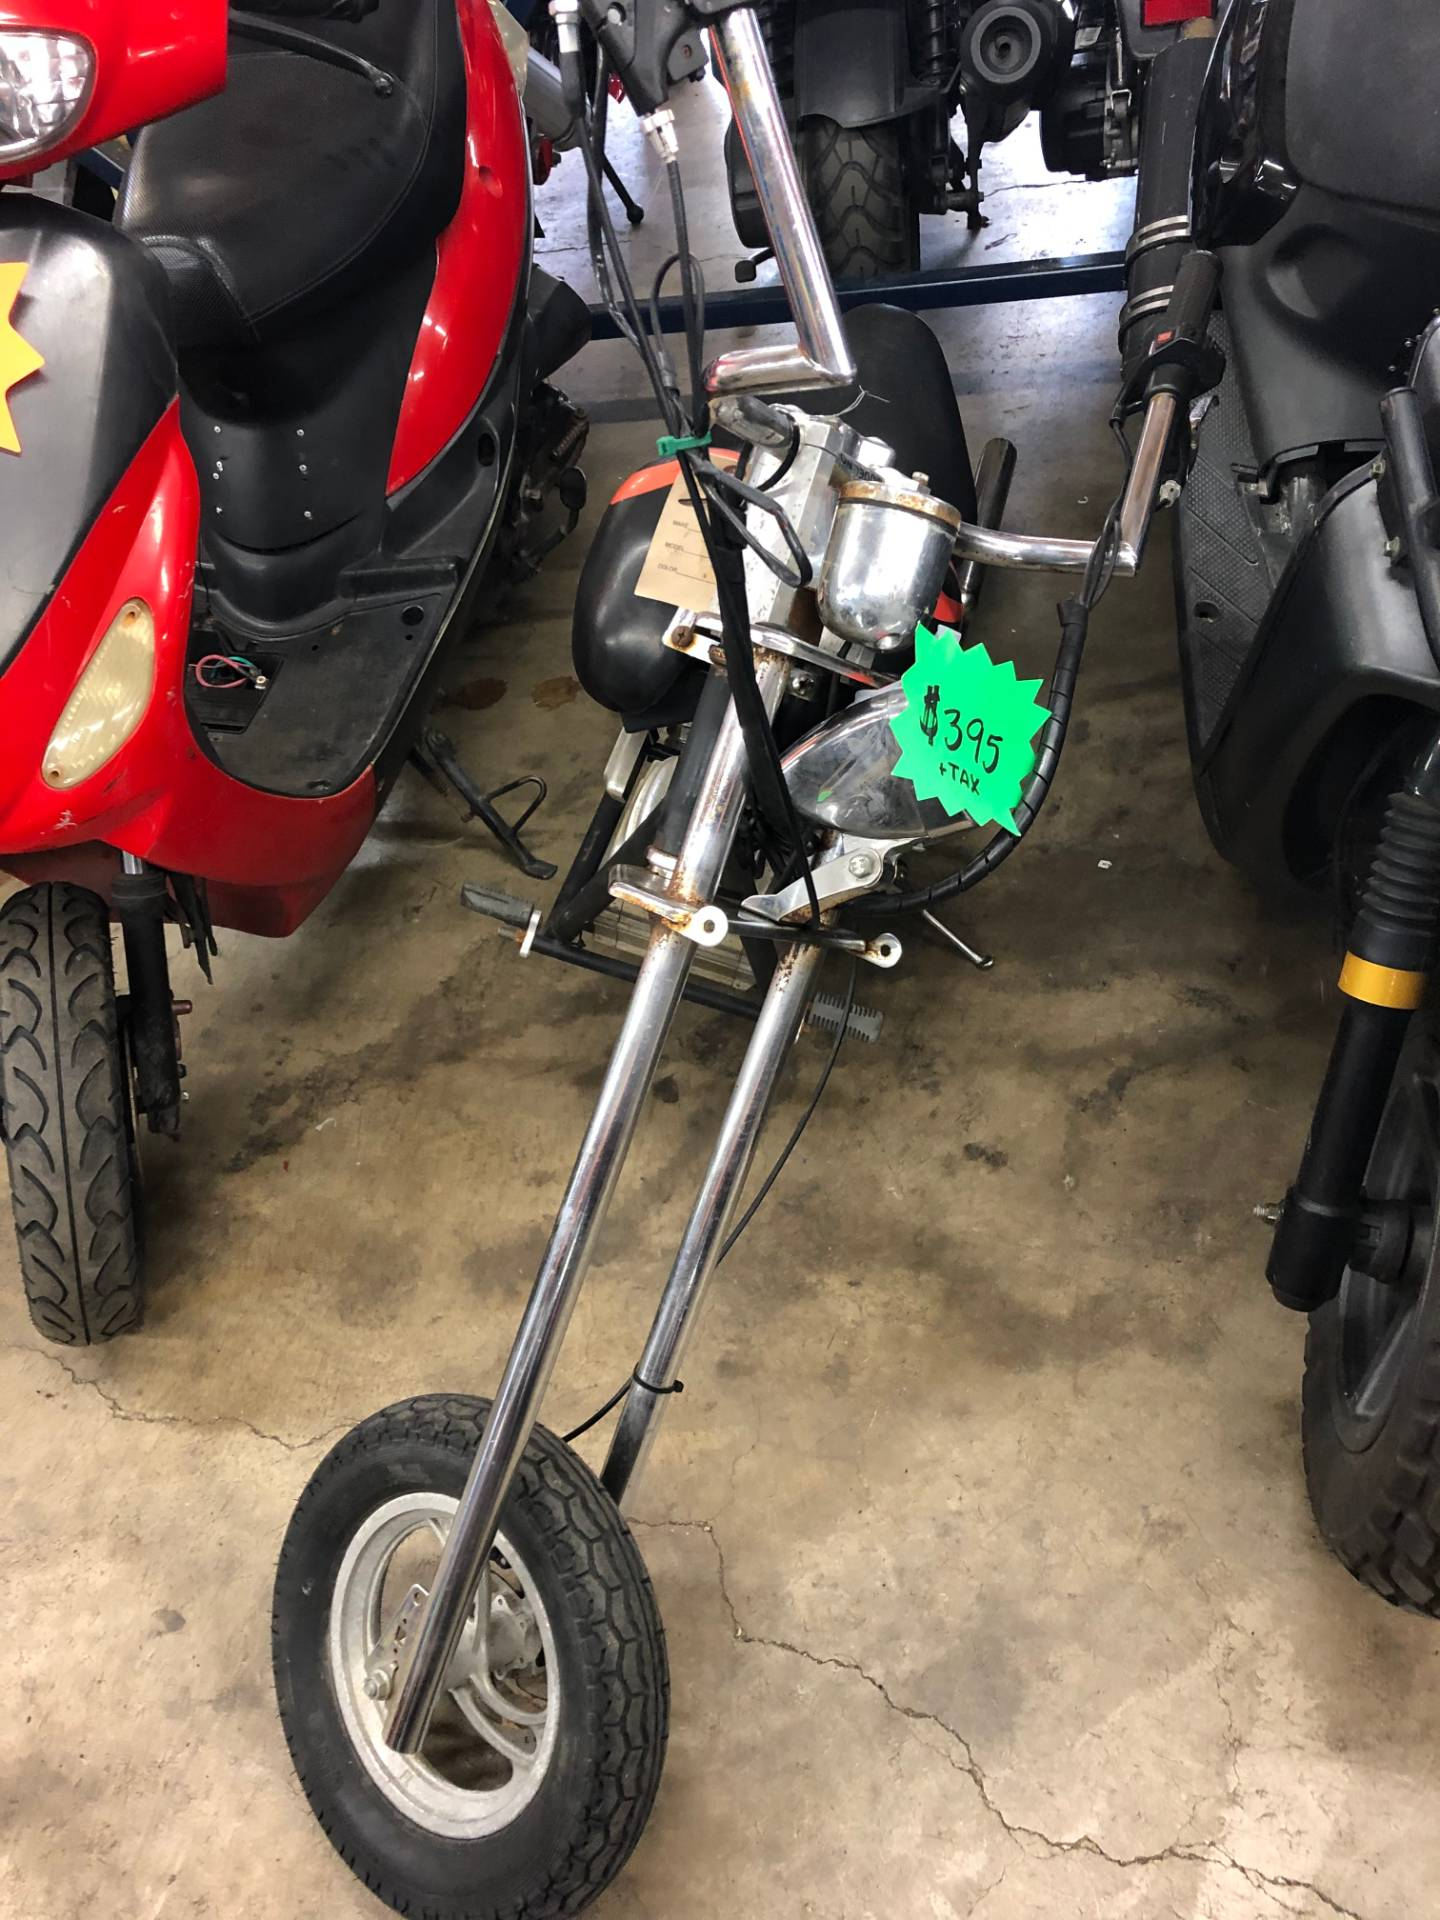 2018 Terminator 7hp in Forest View, Illinois - Photo 1